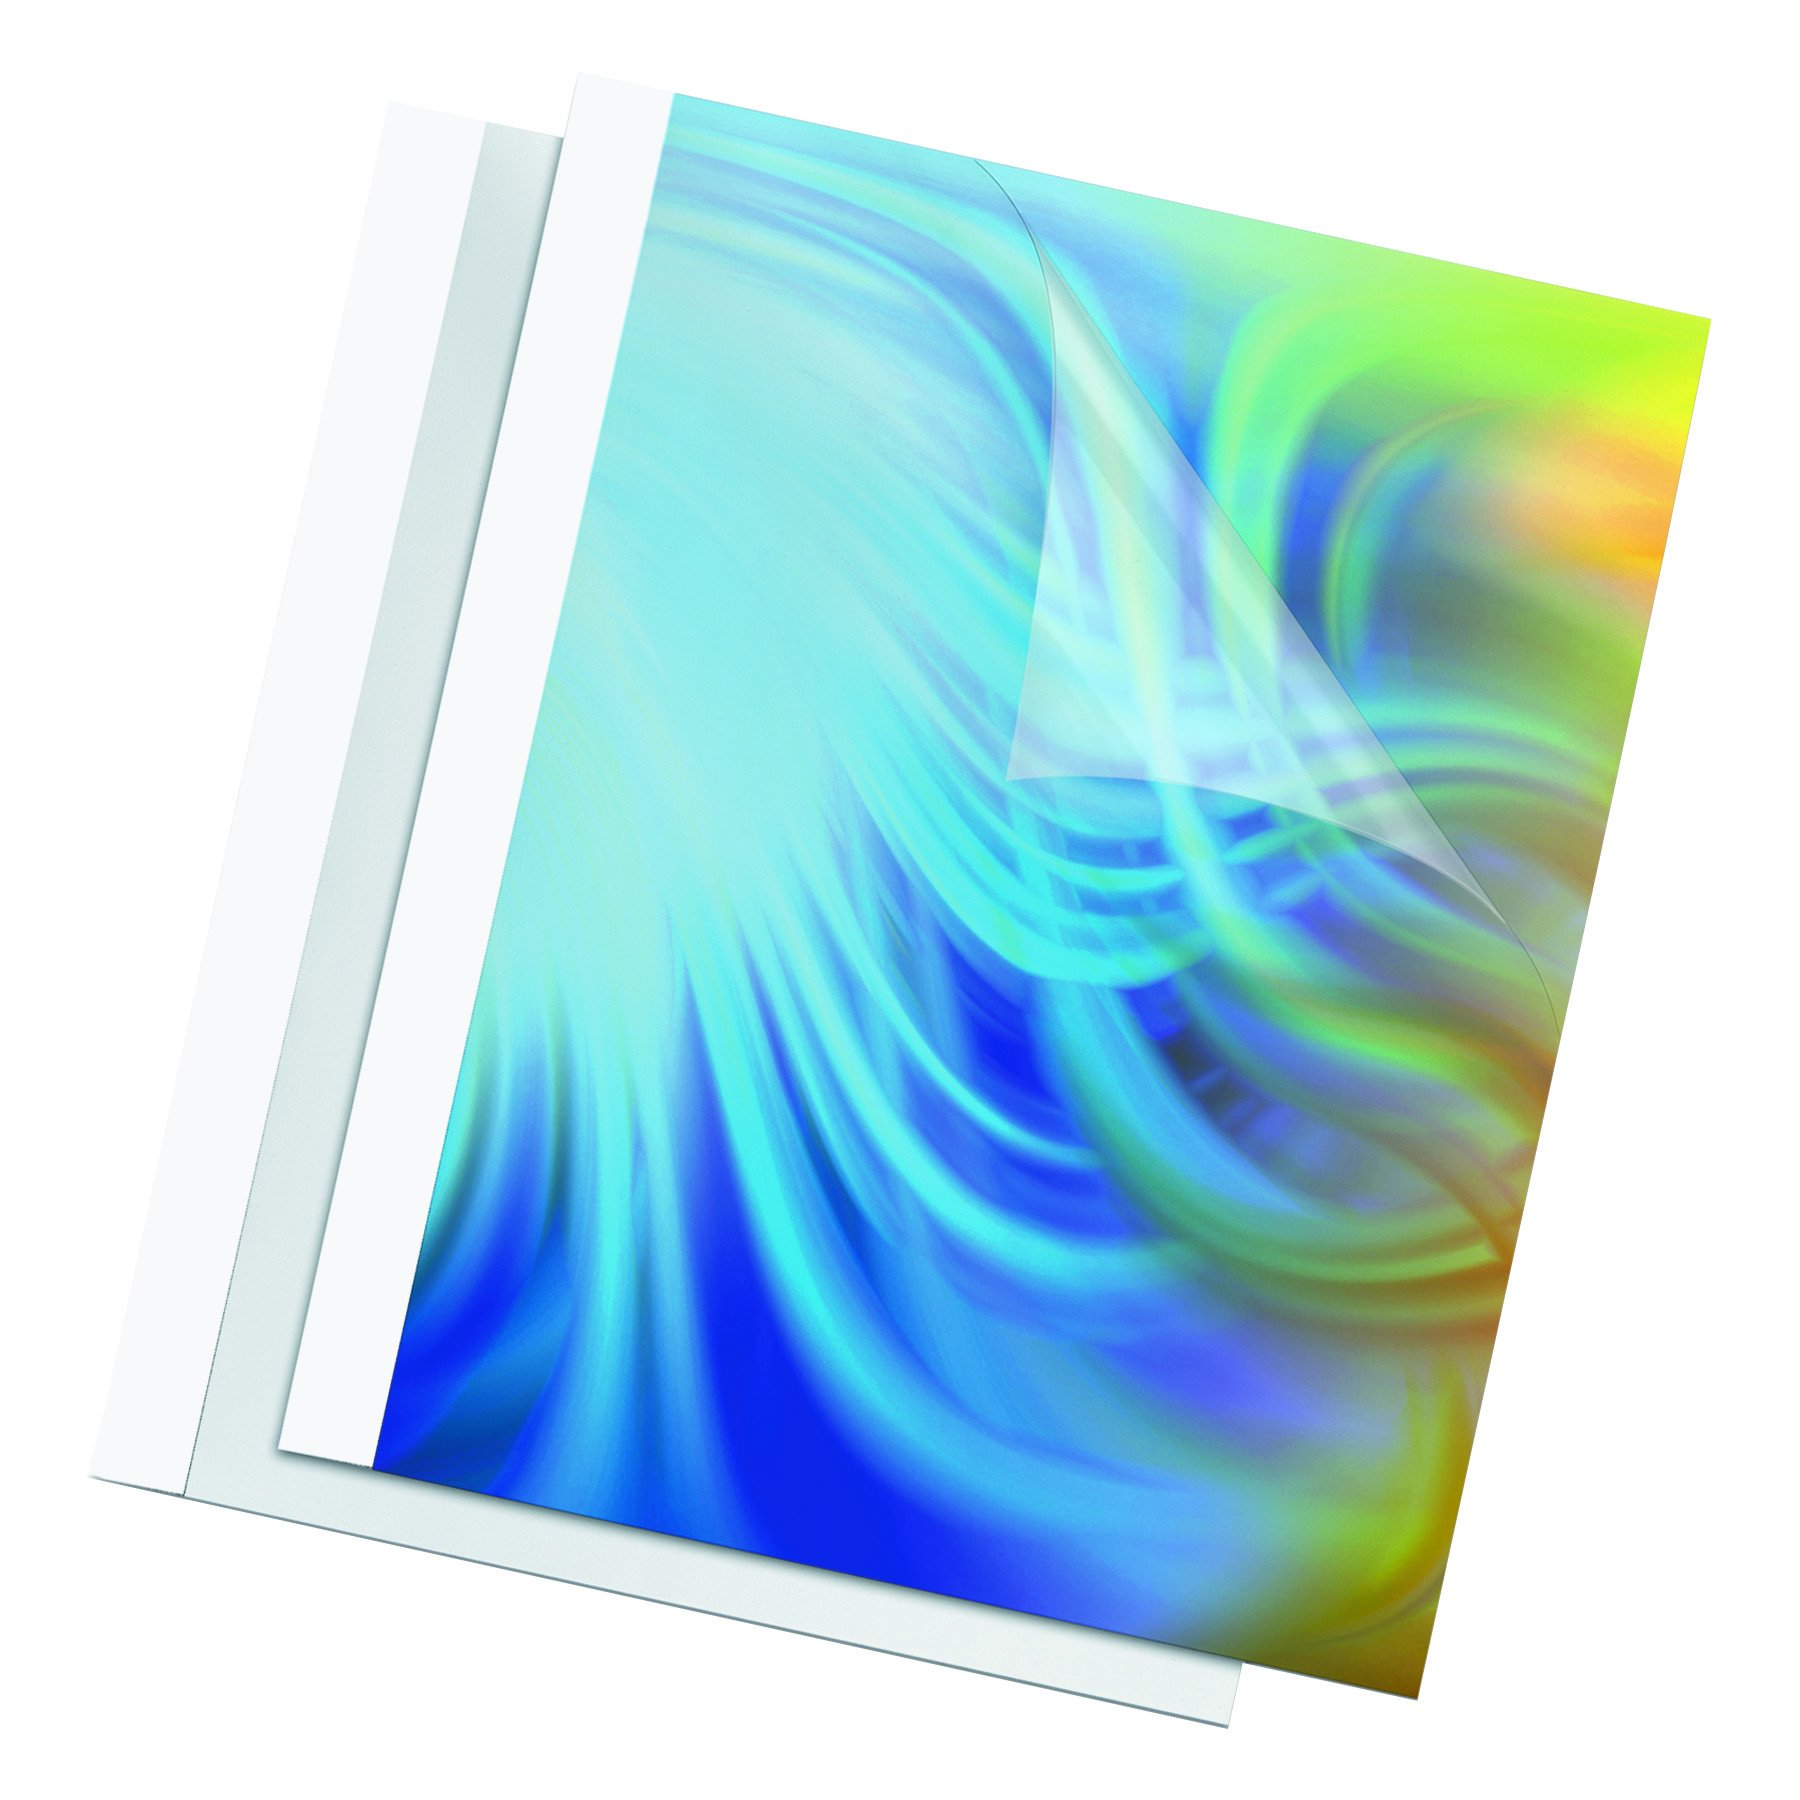 Fellowes Thermal Presentation Covers, 1/8'', 30 sheets, White (52220)